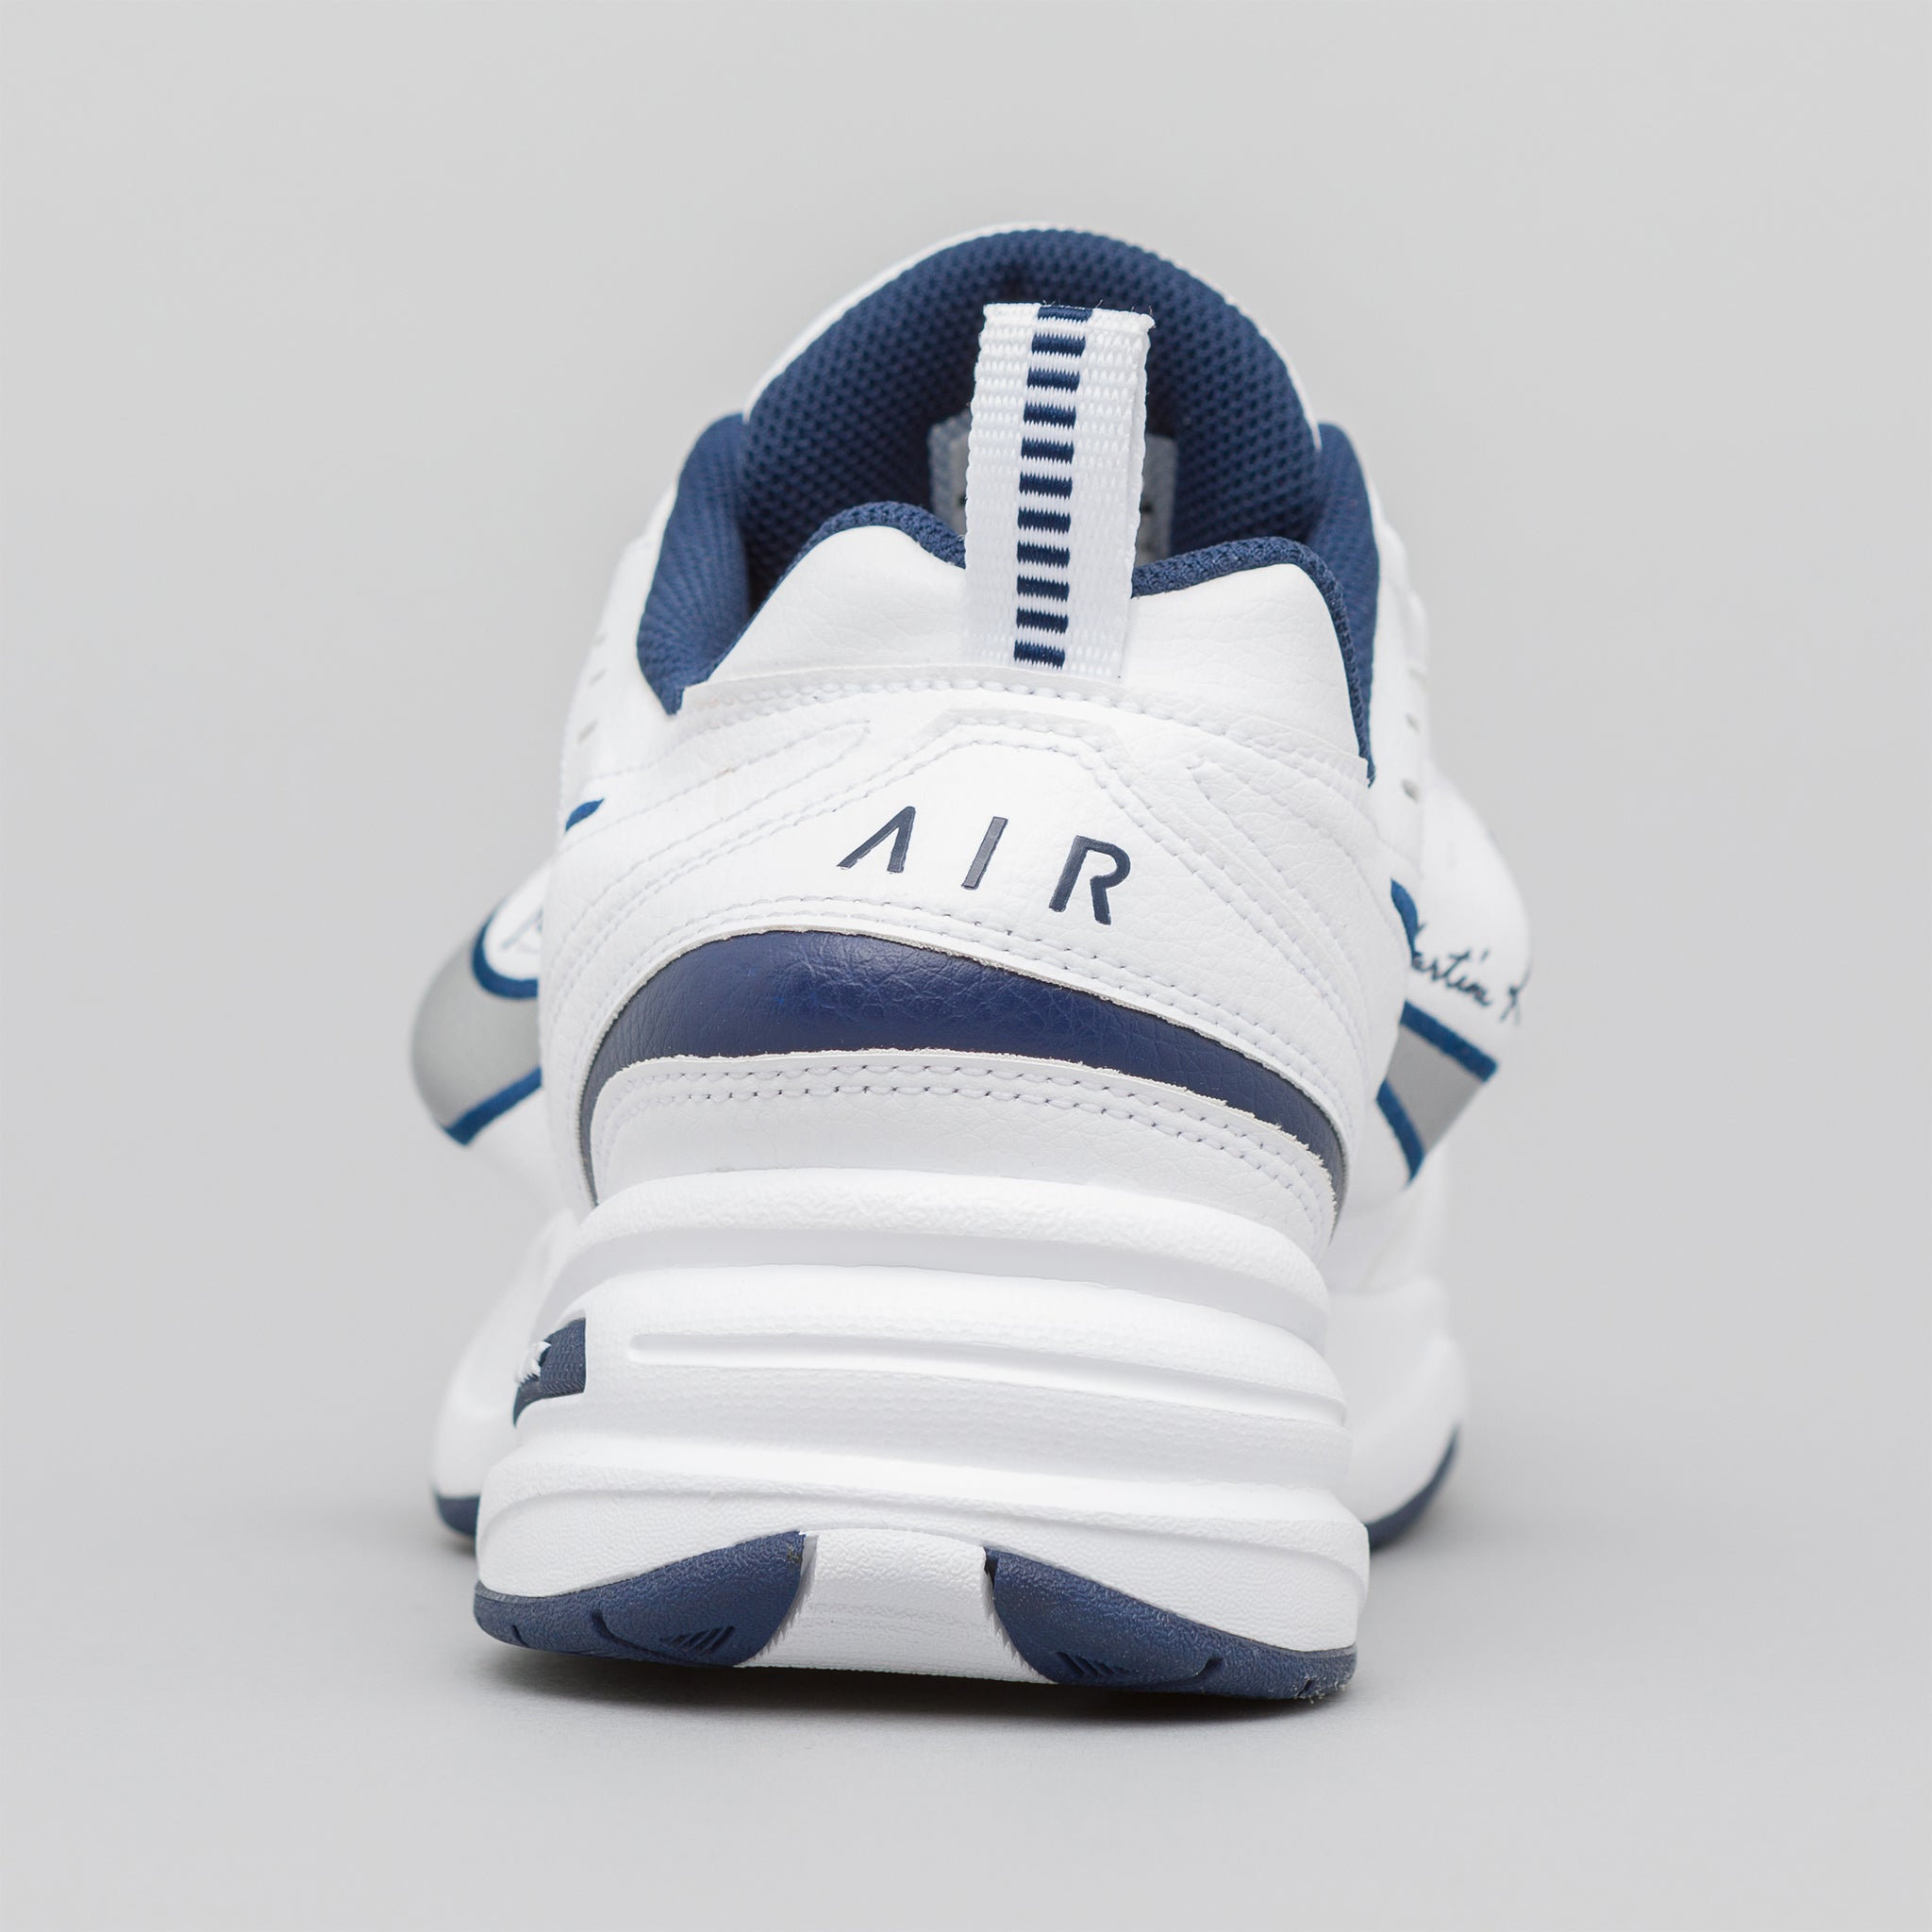 x Martine Rose Air Monarch IV in White